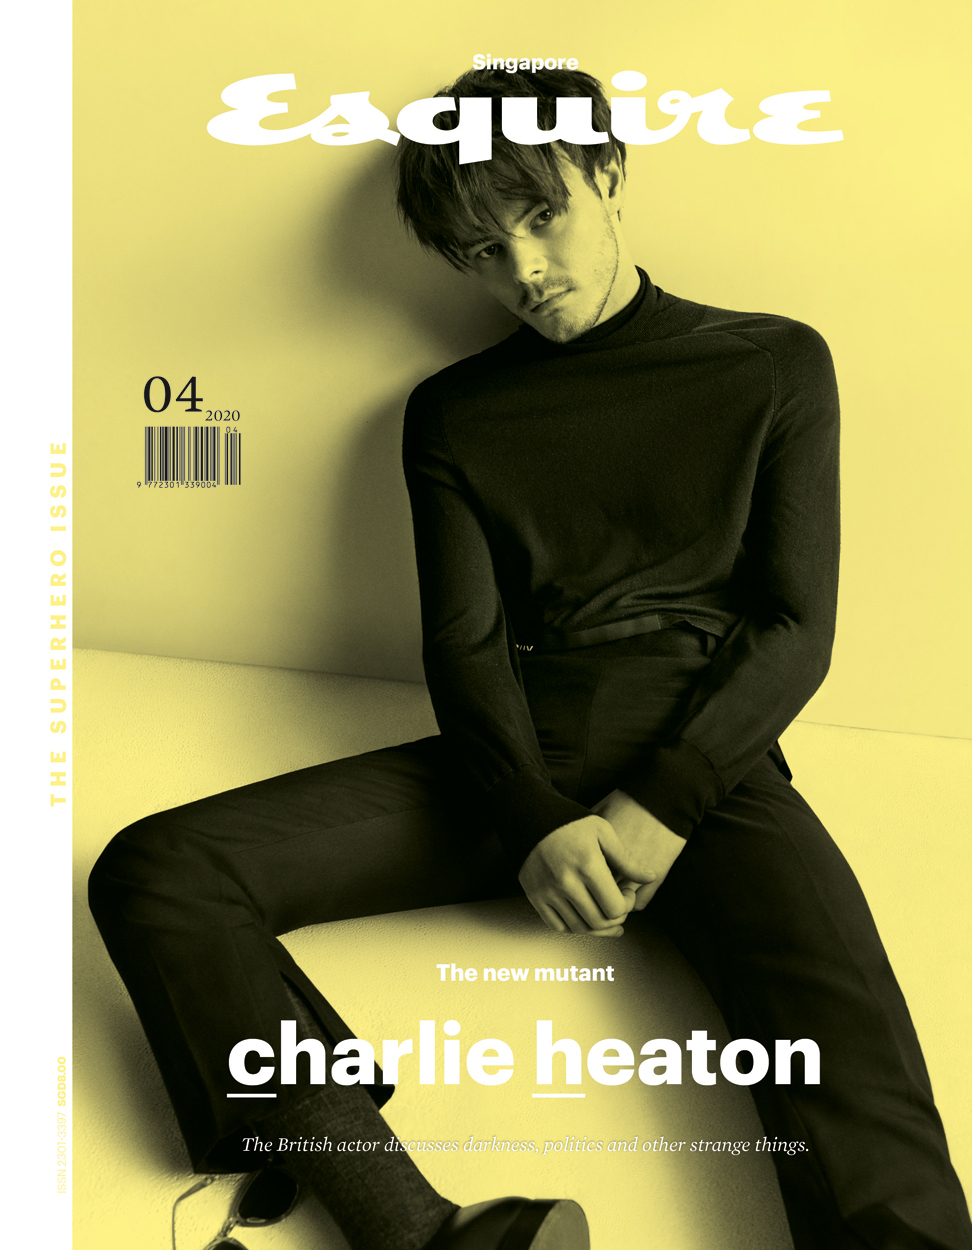 Celebrity Photographer Michael Schwartz: Charlie Heaton for Esquire Magazine cover